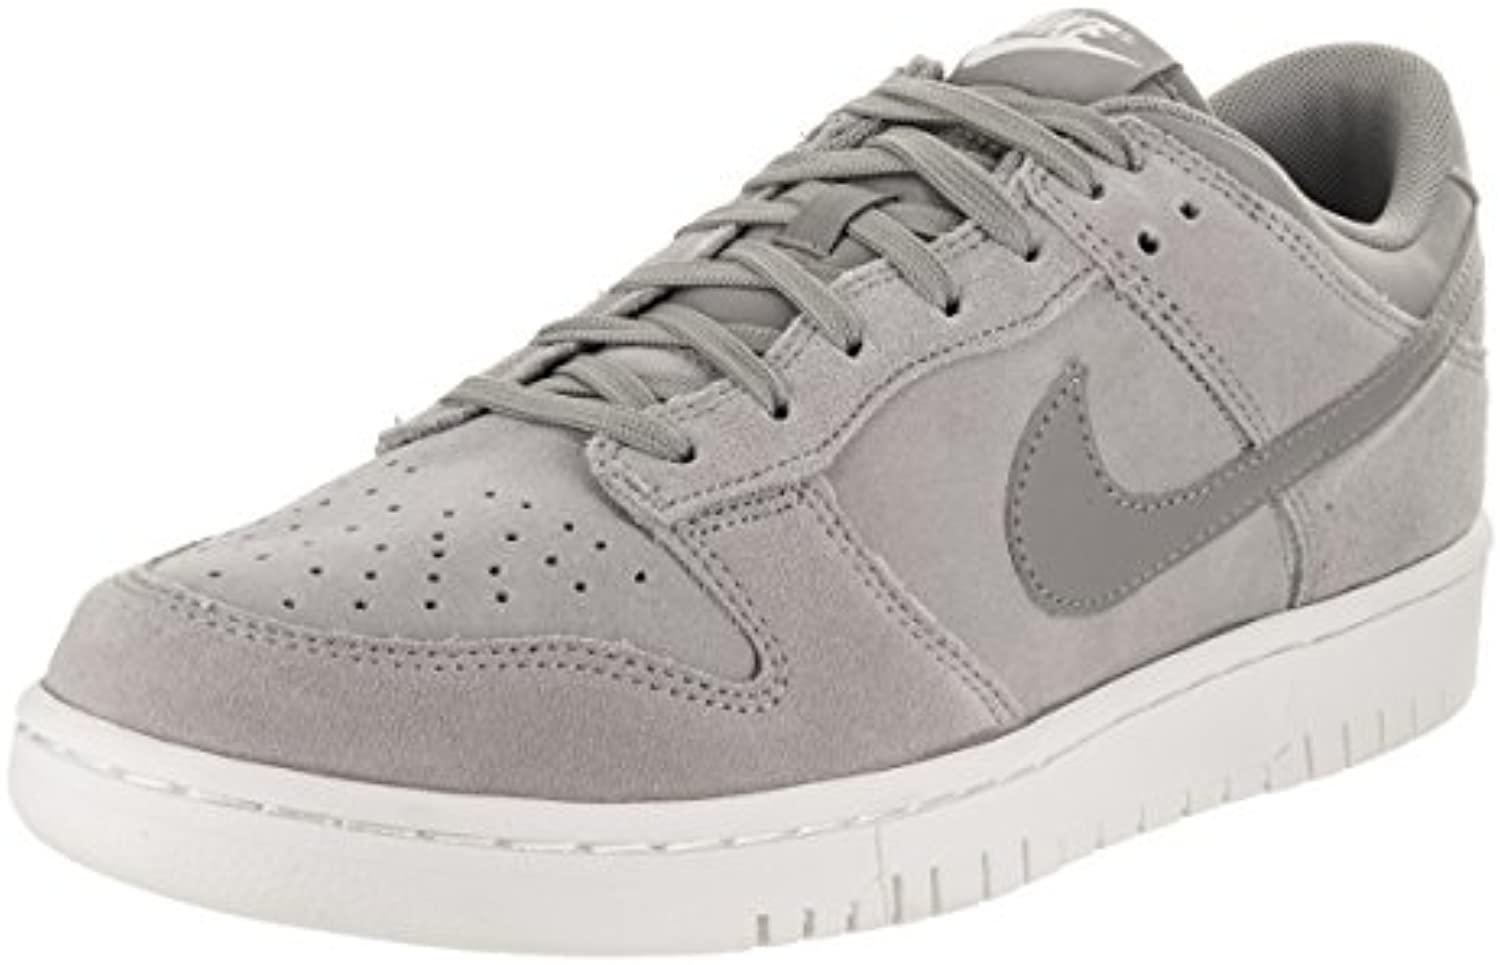 Zapatillas Nike – Dunk Low gris/gris/blanco talla: 42